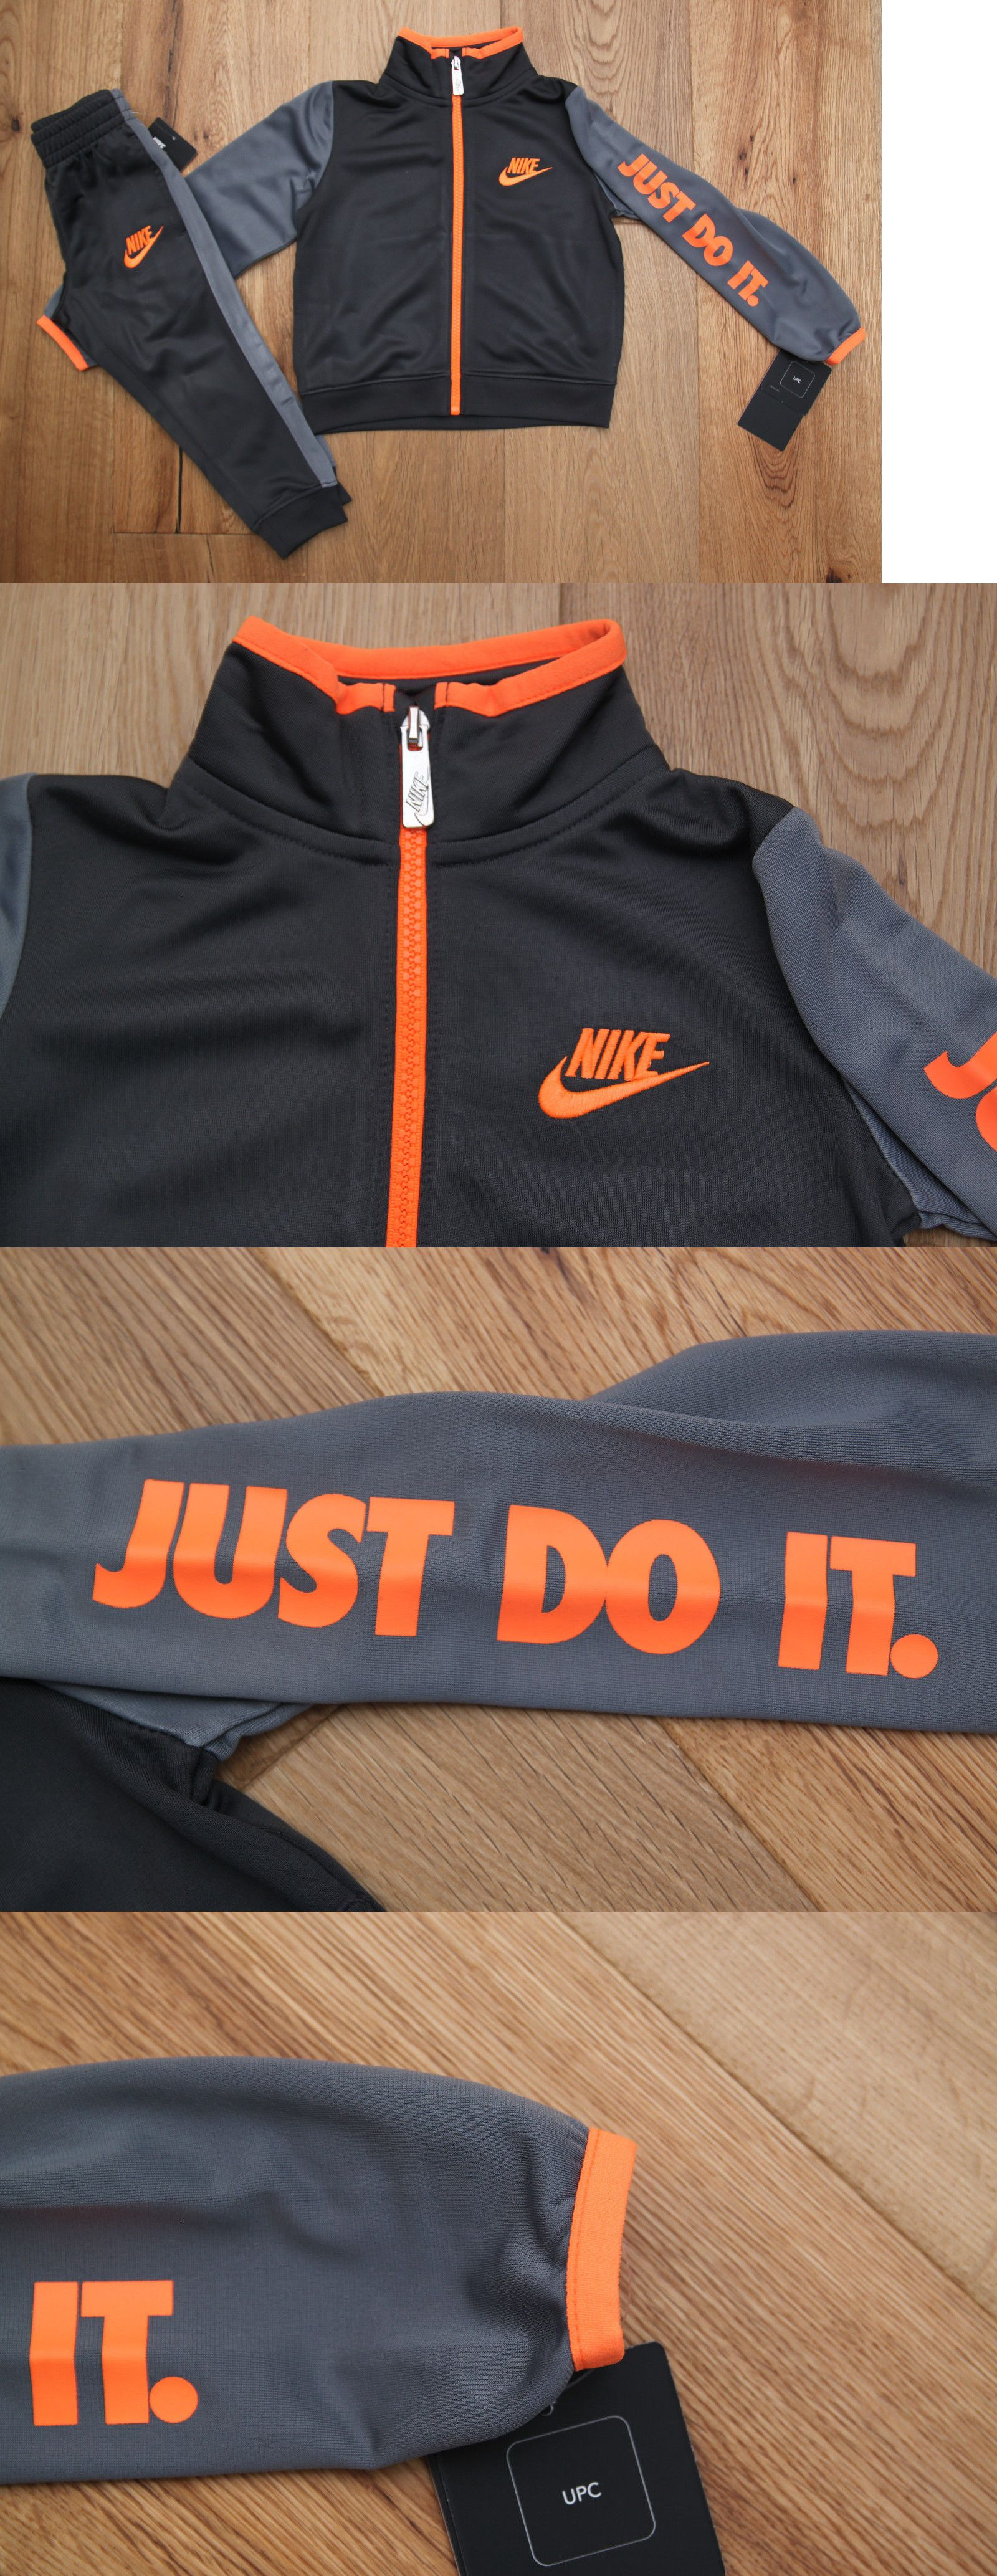 ae75d3358 Outfits and Sets 147333: Nike Toddler Boy 2 Piece Jogging Set ~ Tracksuit ~  Gray And Orange ~ Just Do It ~ -> BUY IT NOW ONLY: $34.97 on eBay!